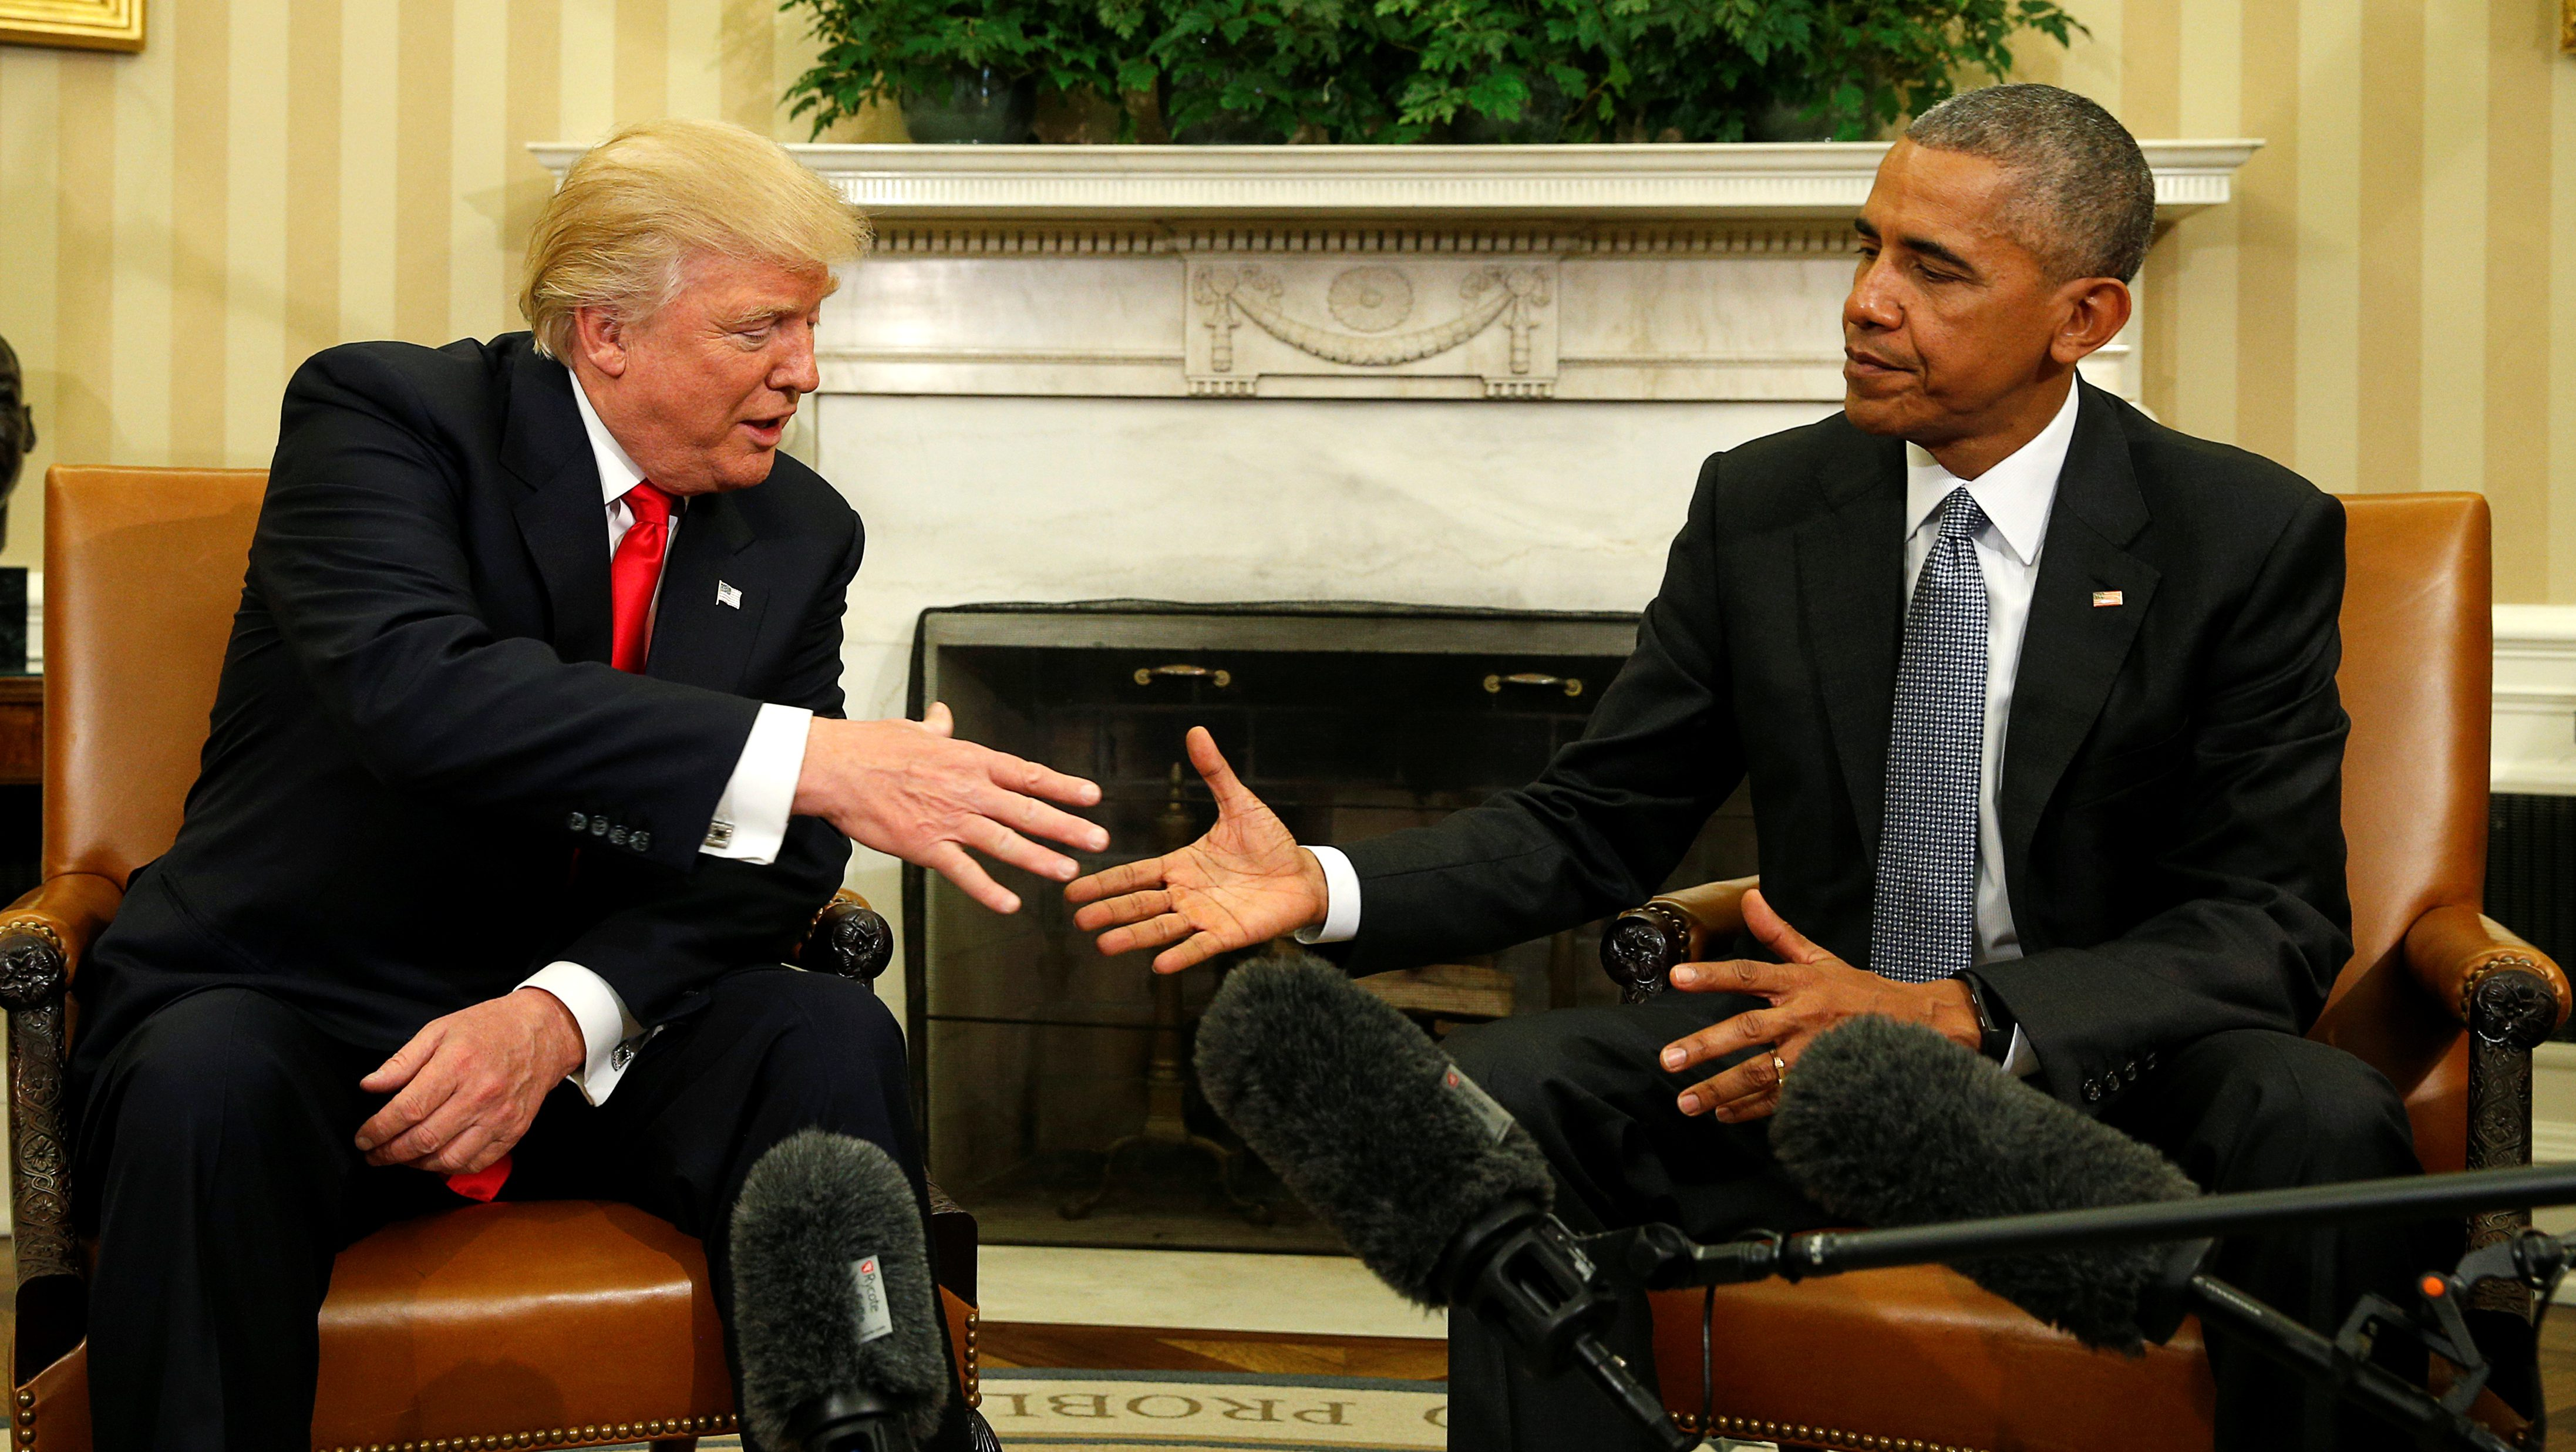 US President Barack Obama meets with President-elect Donald Trump in the Oval Office of the White House in Washington November 10,